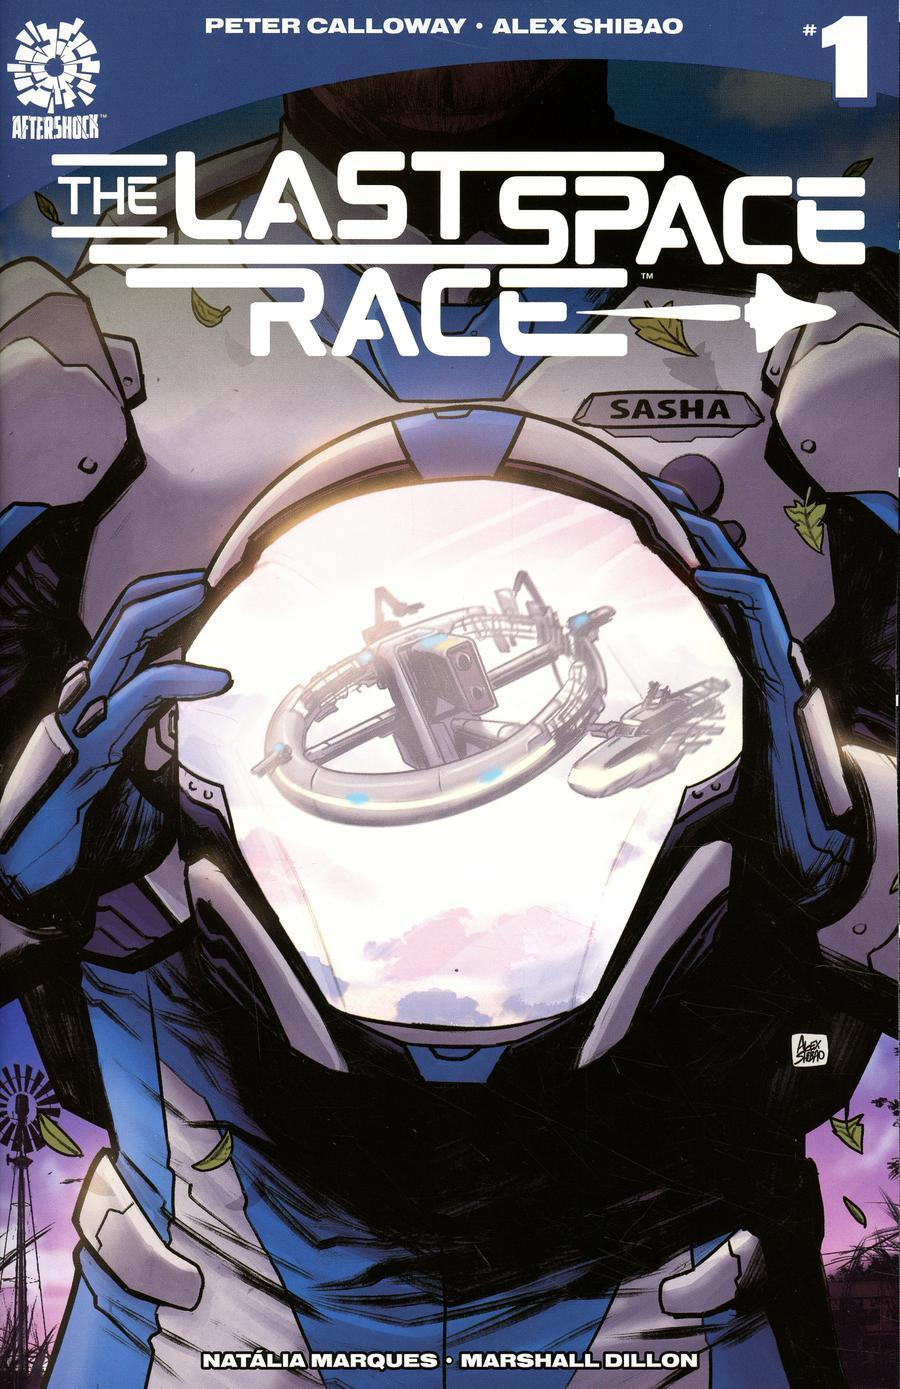 Last Space Race Vol. 1 #1